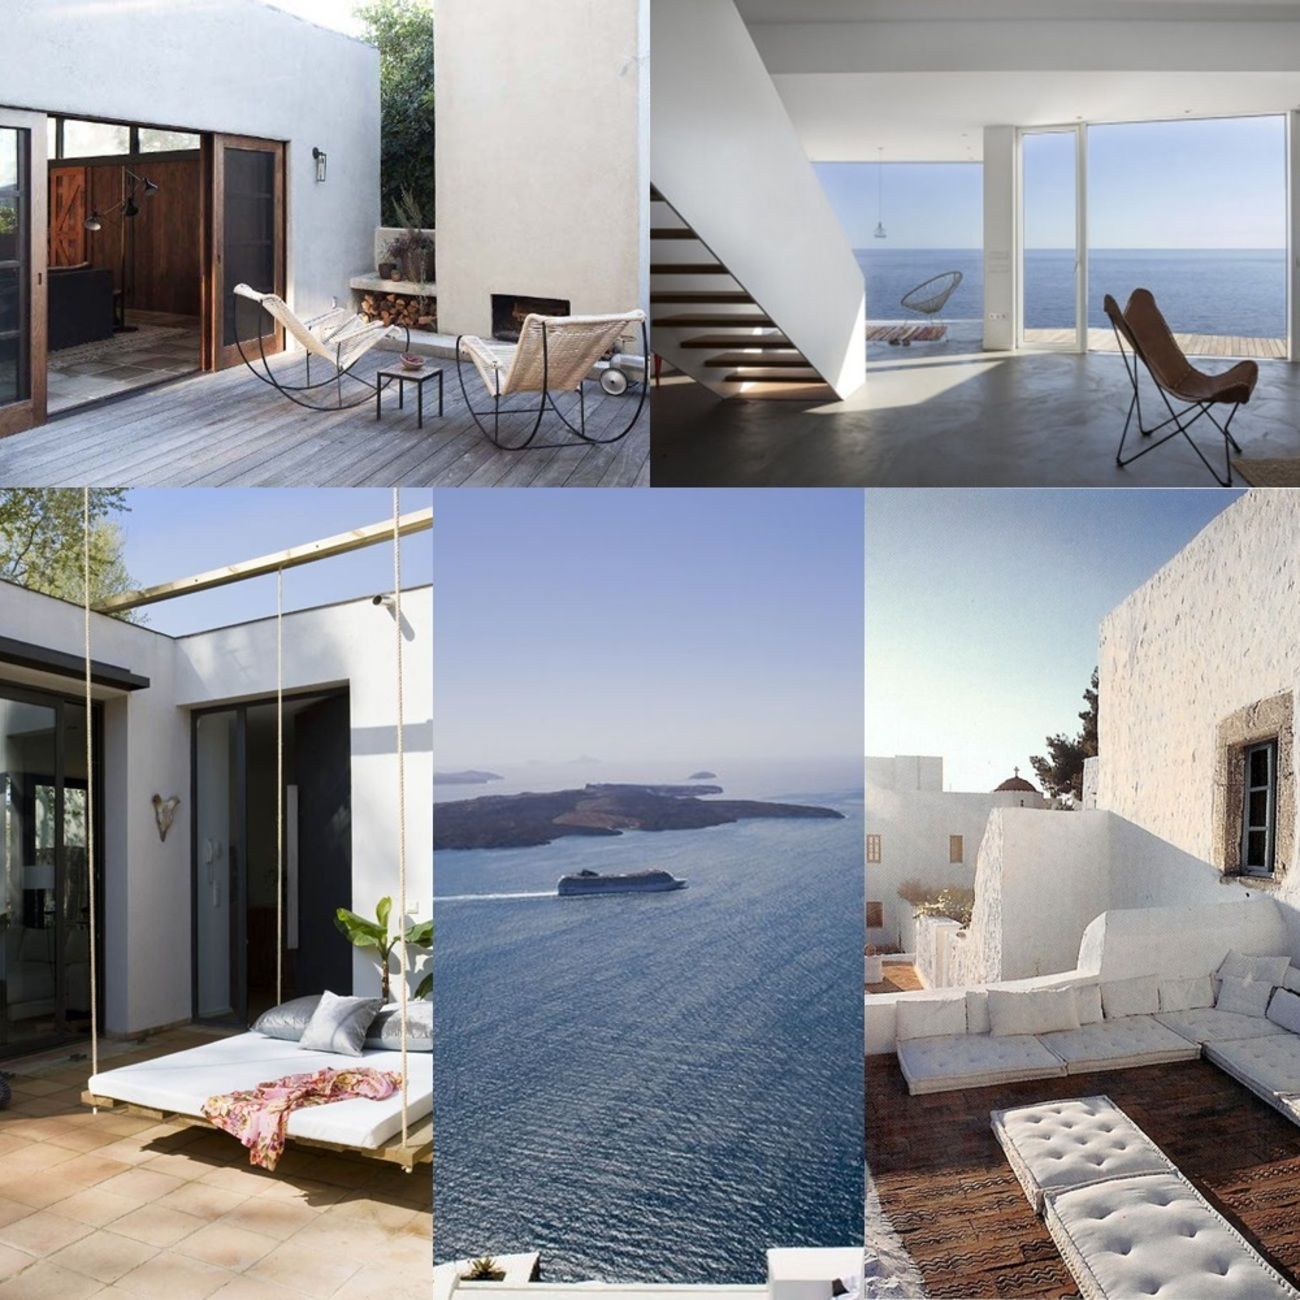 places-i-want-to-live-7-04